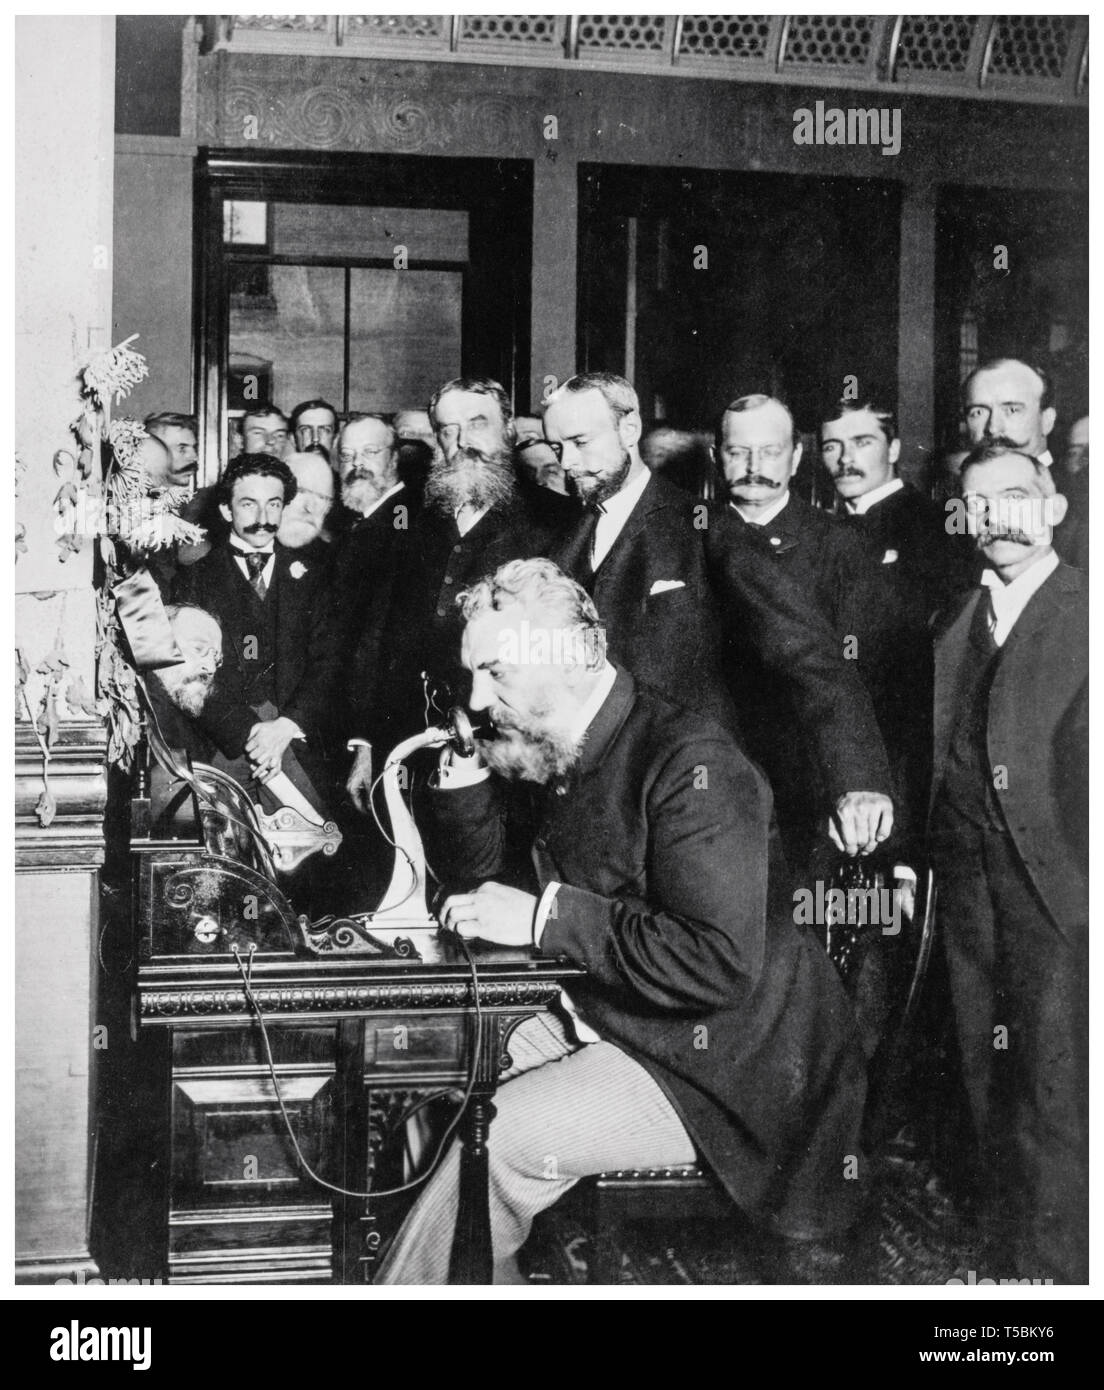 Alexander Graham Bell (1847-1922) at the opening of the long-distance telephone line from New York to Chicago, 1892 Stock Photo